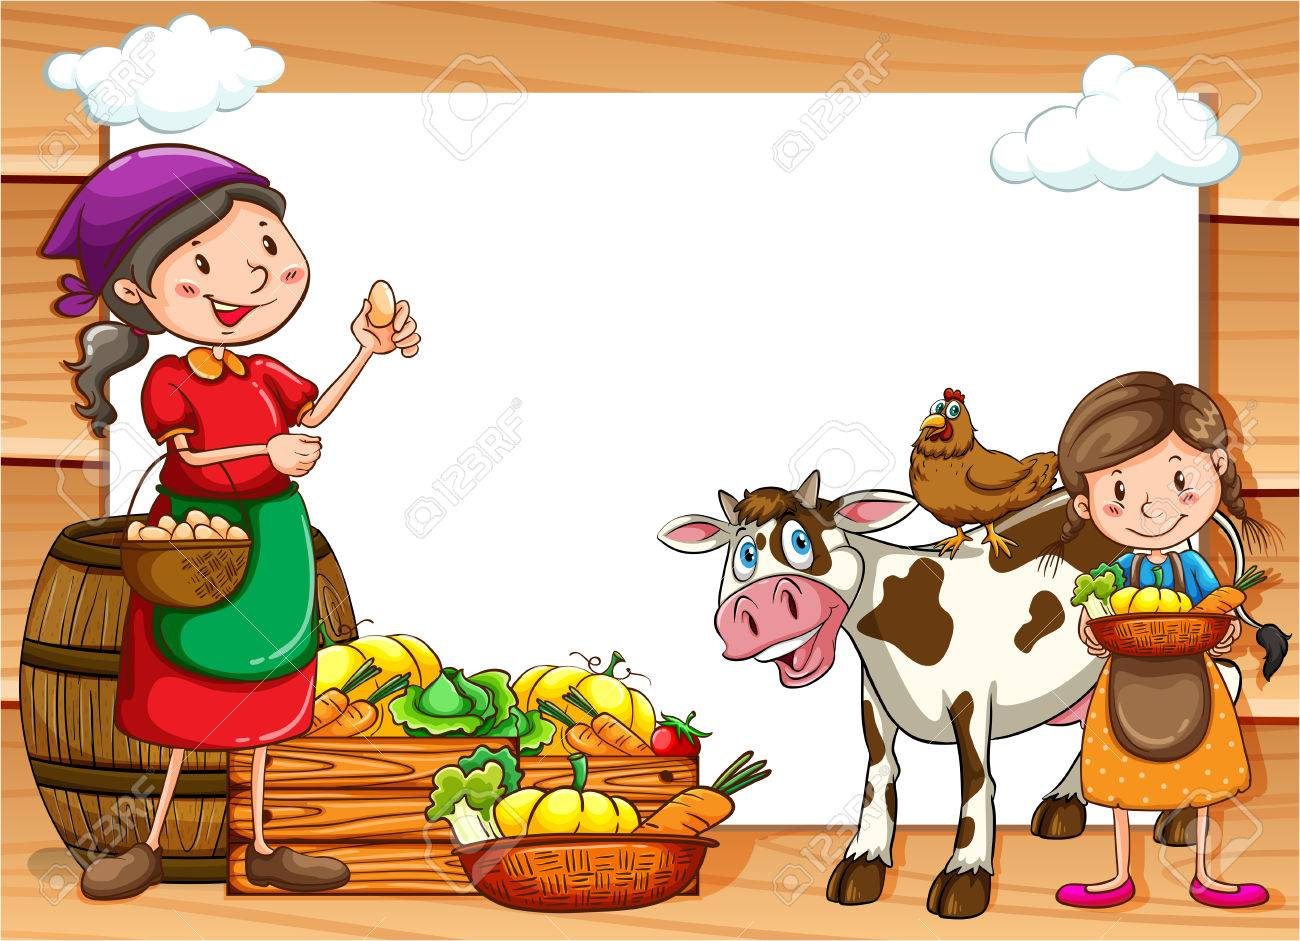 Frame Of Vegetable Sellers And Market Royalty Free Cliparts, Vectors ...